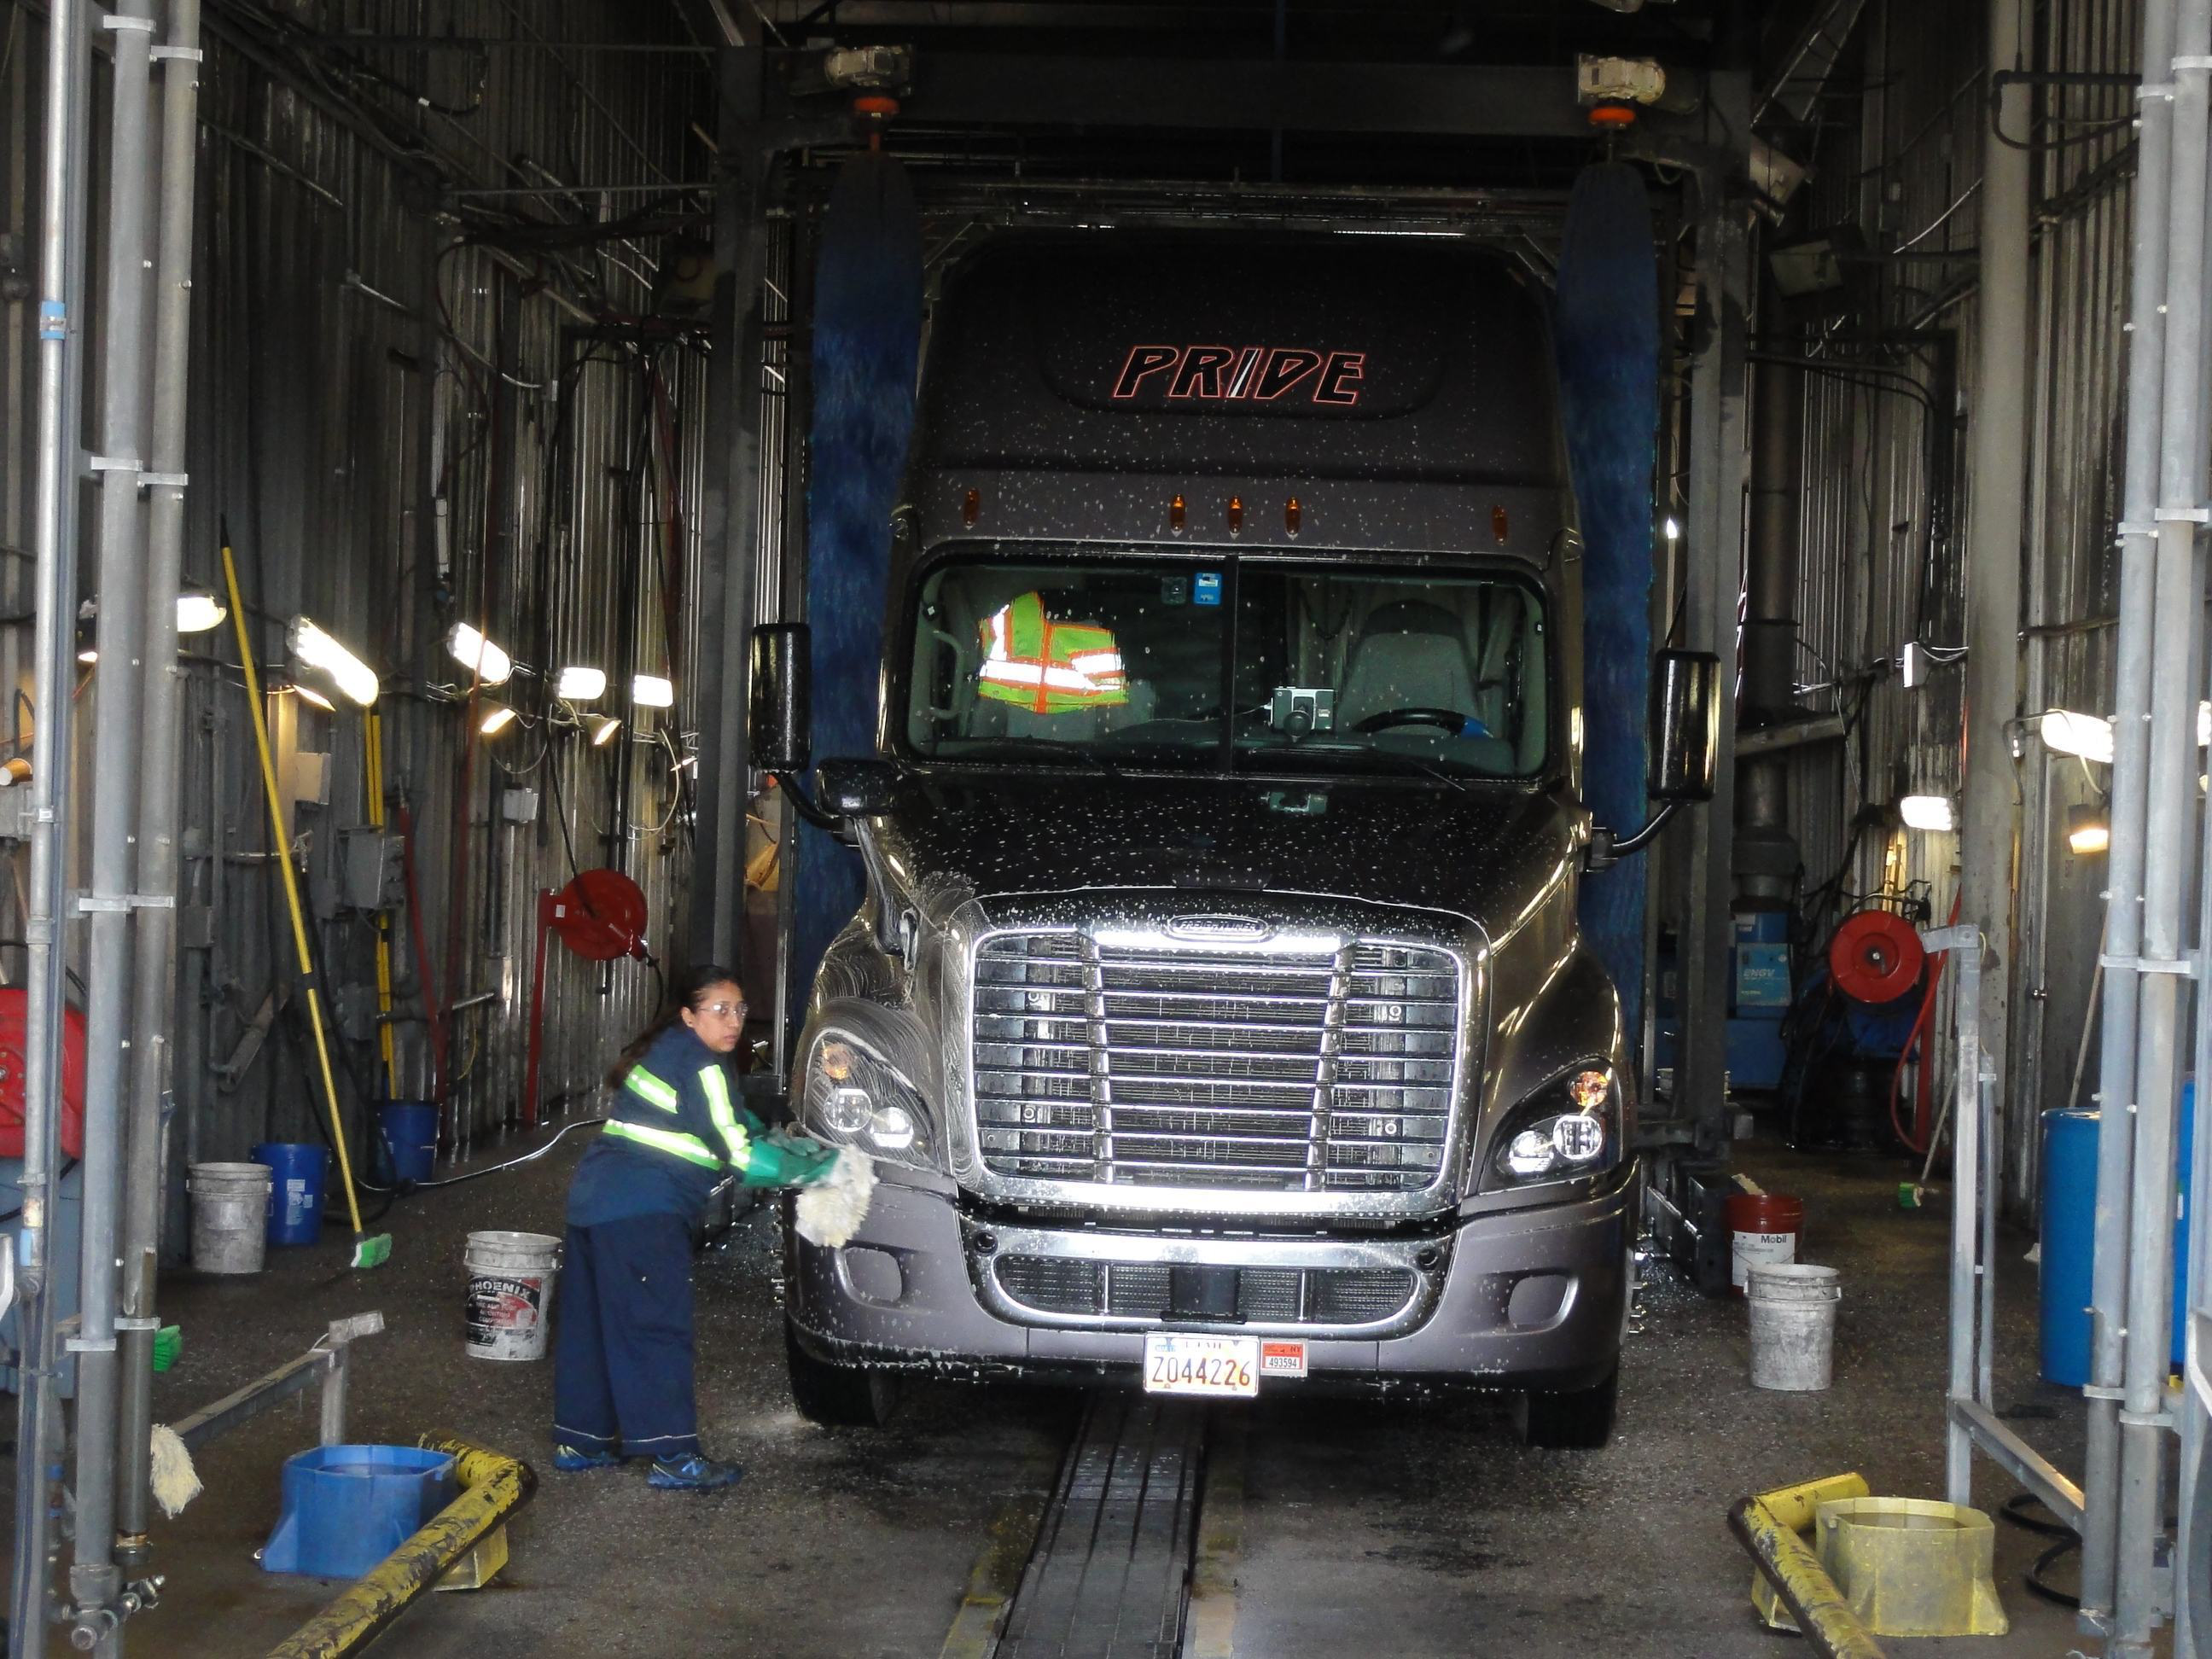 Pride transport s hand wash truck bay serves as a trucking image campaign and driver recruiting